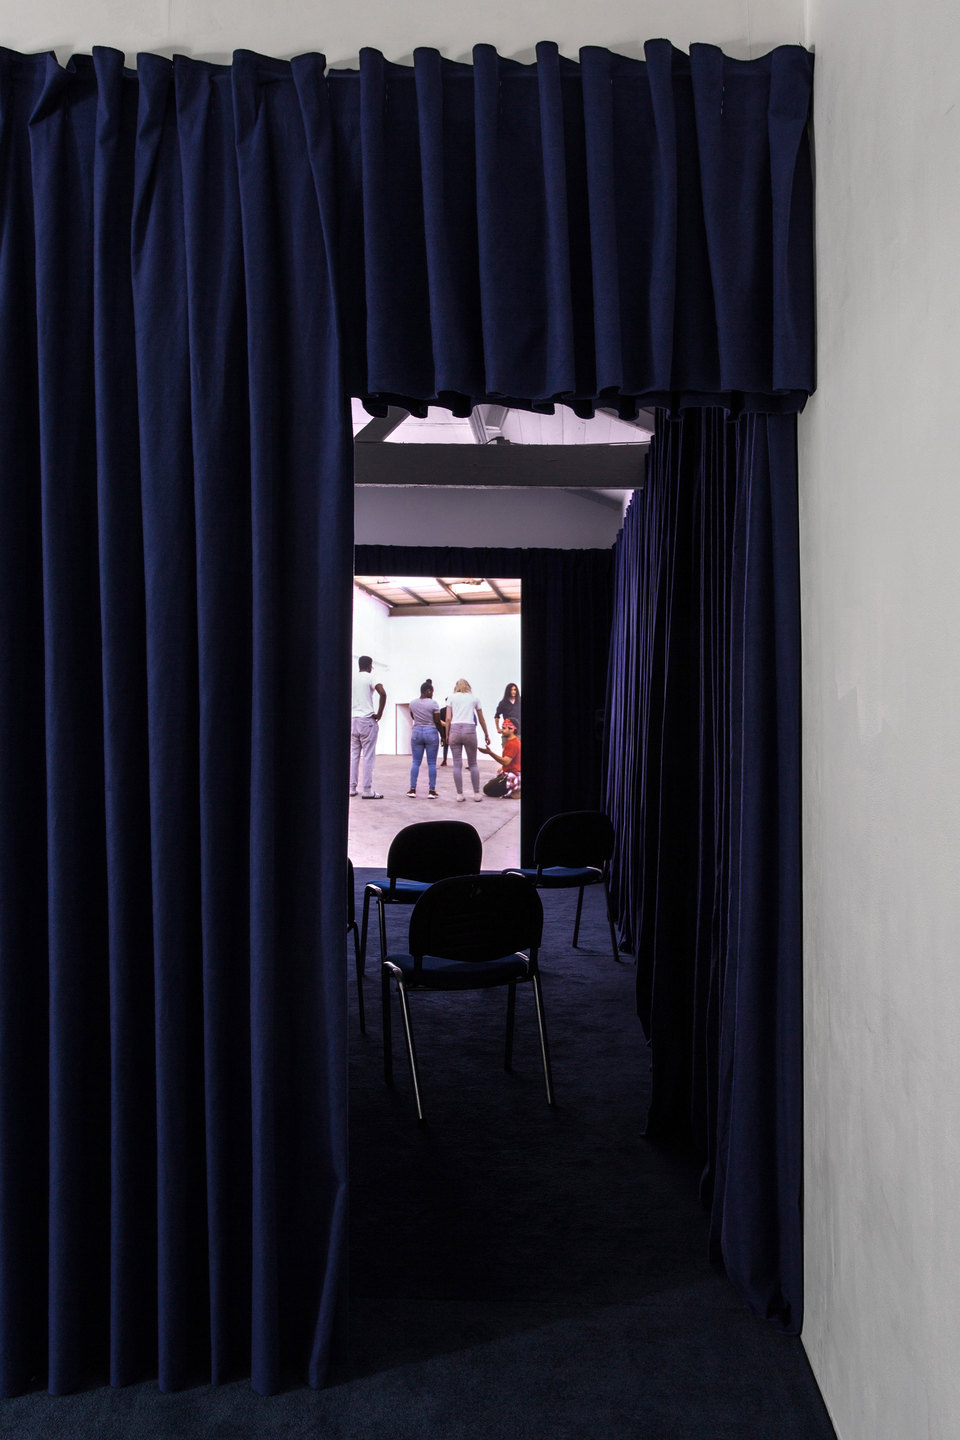 Emanuel Almborg, the Nth Degree, 2018, Cell Project Space